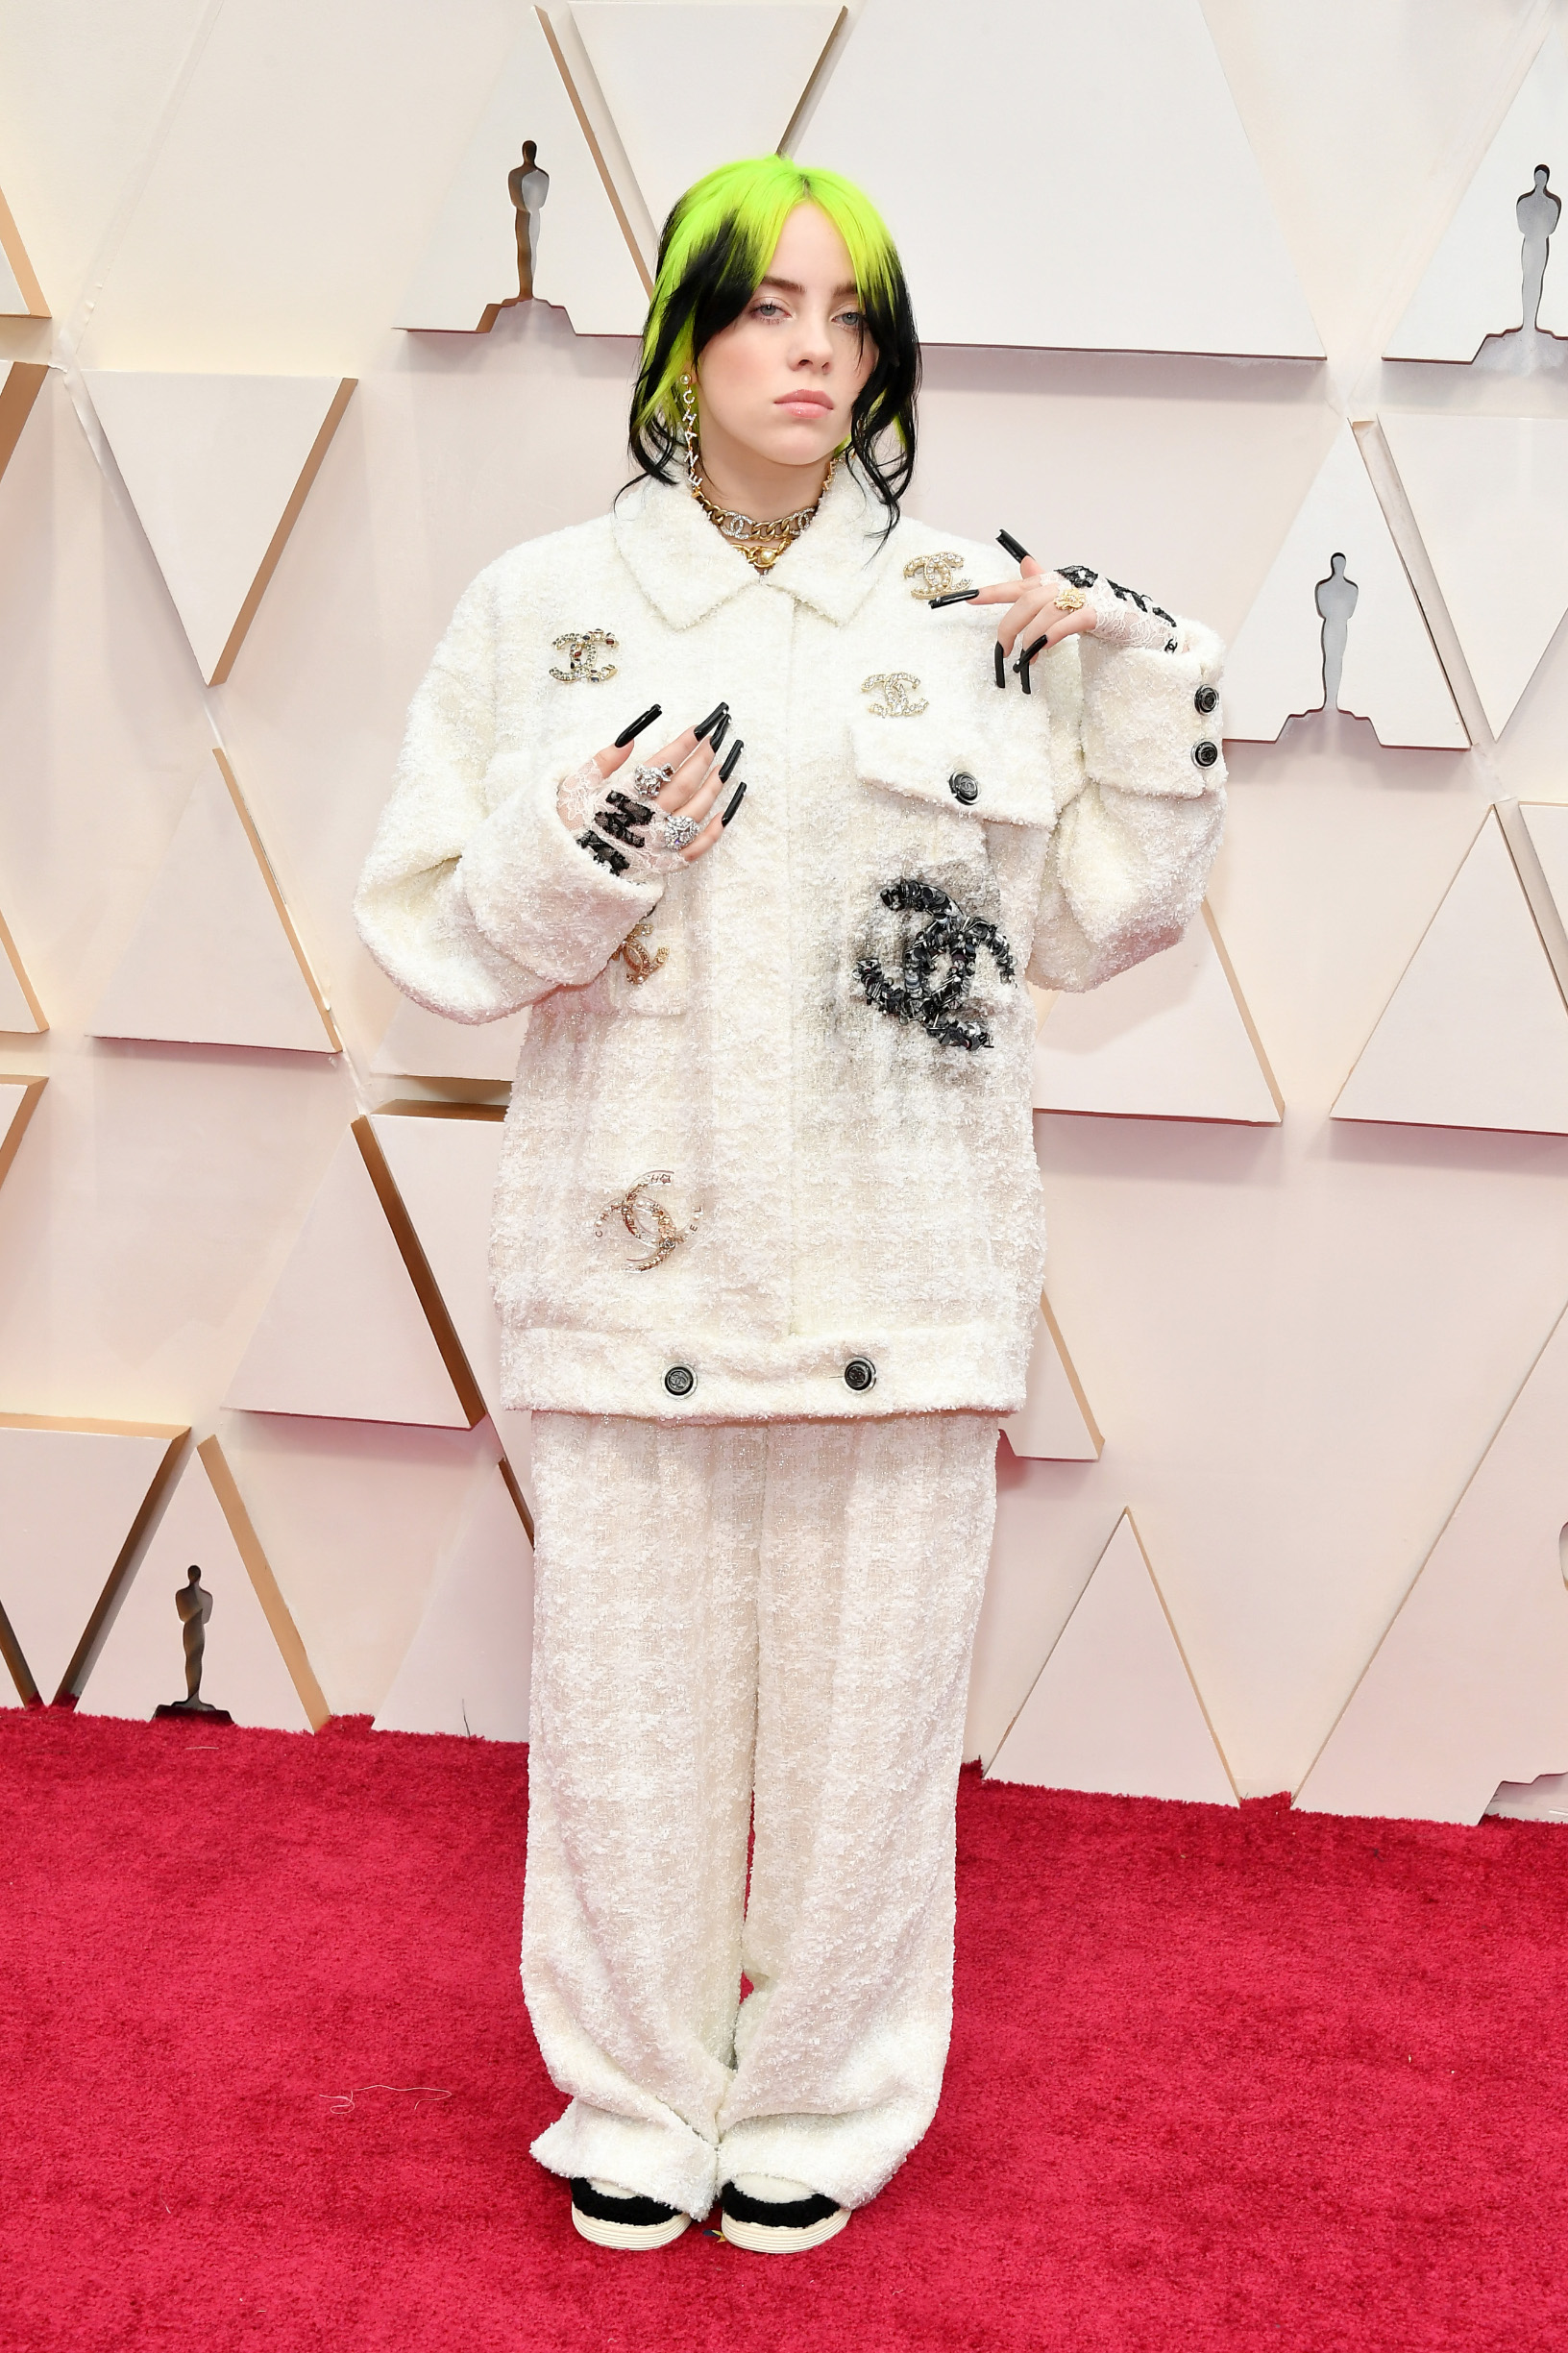 HOLLYWOOD, CALIFORNIA - FEBRUARY 09: Billie Eilish attends the 92nd Annual Academy Awards at Hollywood and Highland on February 09, 2020 in Hollywood, California. (Photo by Amy Sussman/Getty Images)